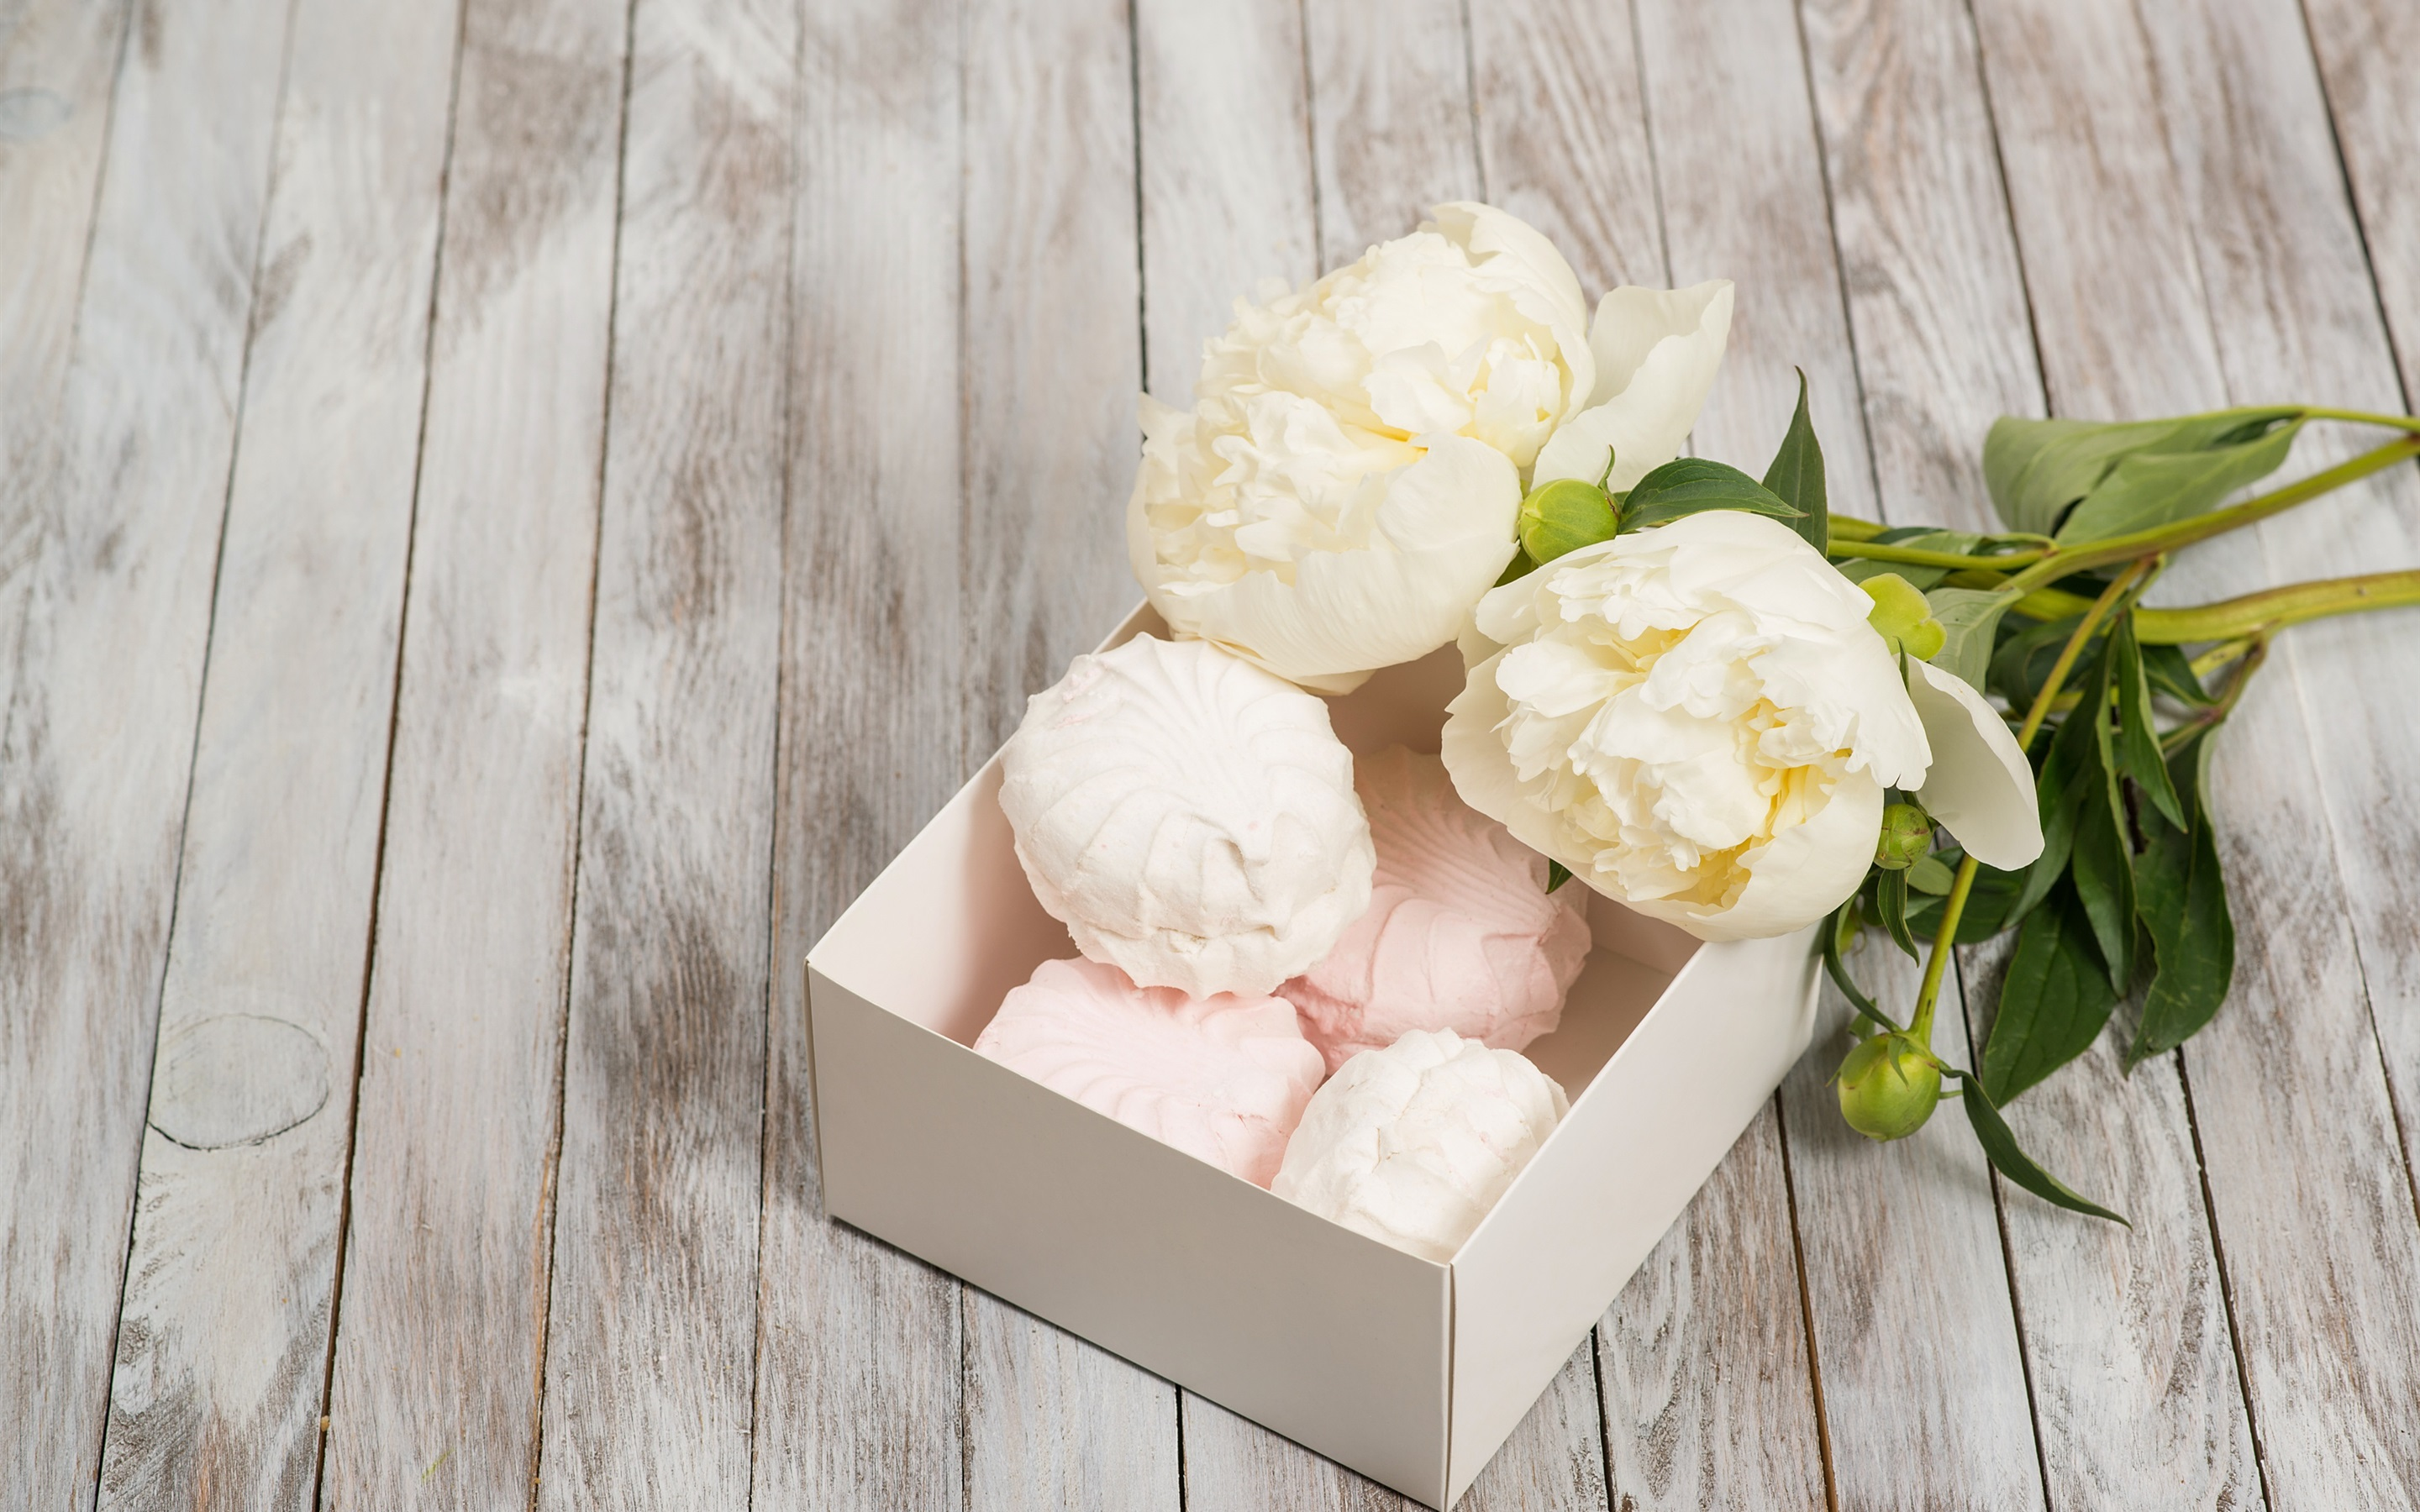 Wallpaper White Peonies Flowers 2880x1800 Hd Picture Image